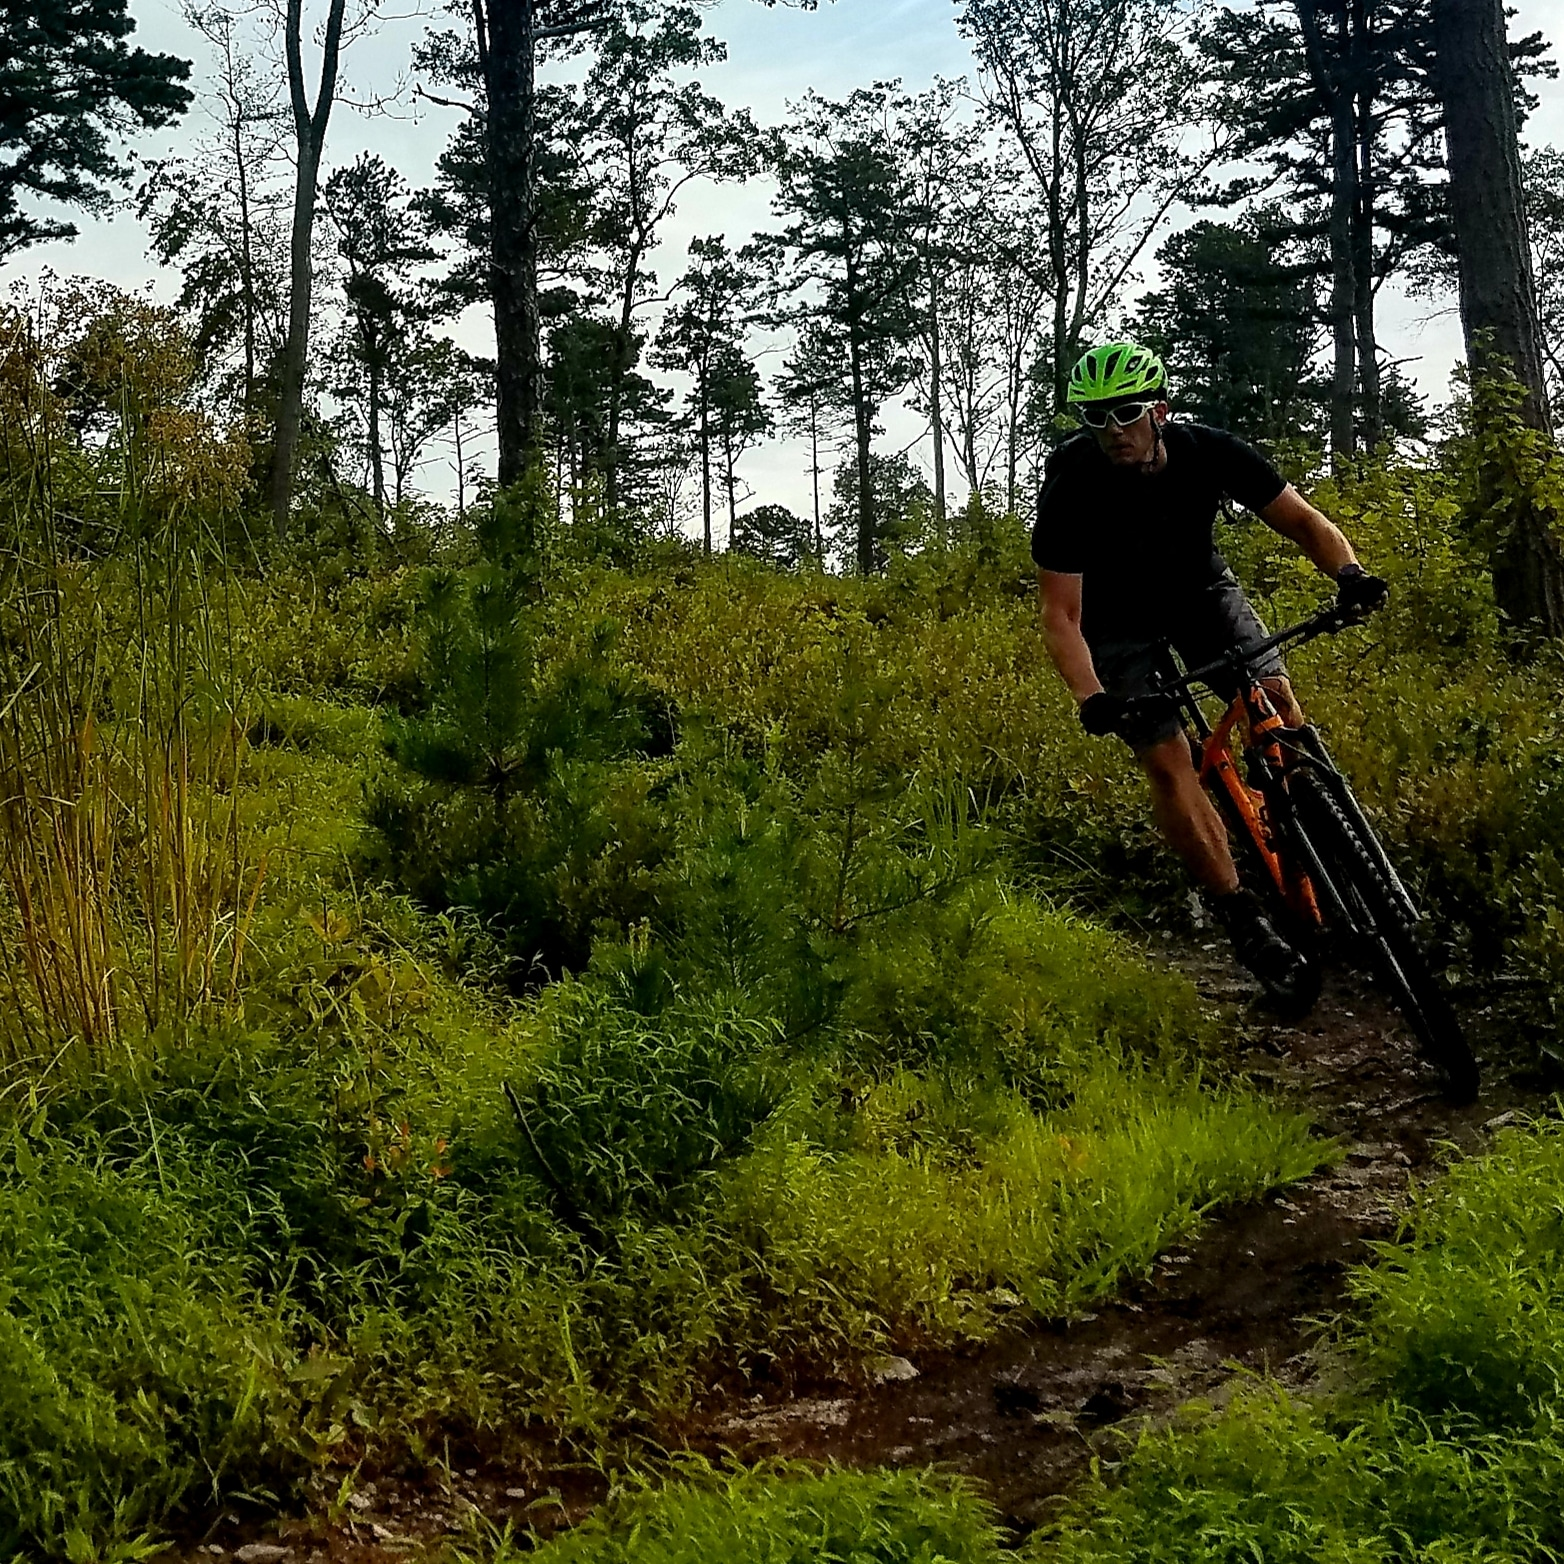 ALL TRAILS LEAD TO ICE CREAM: TRAIL TIPS